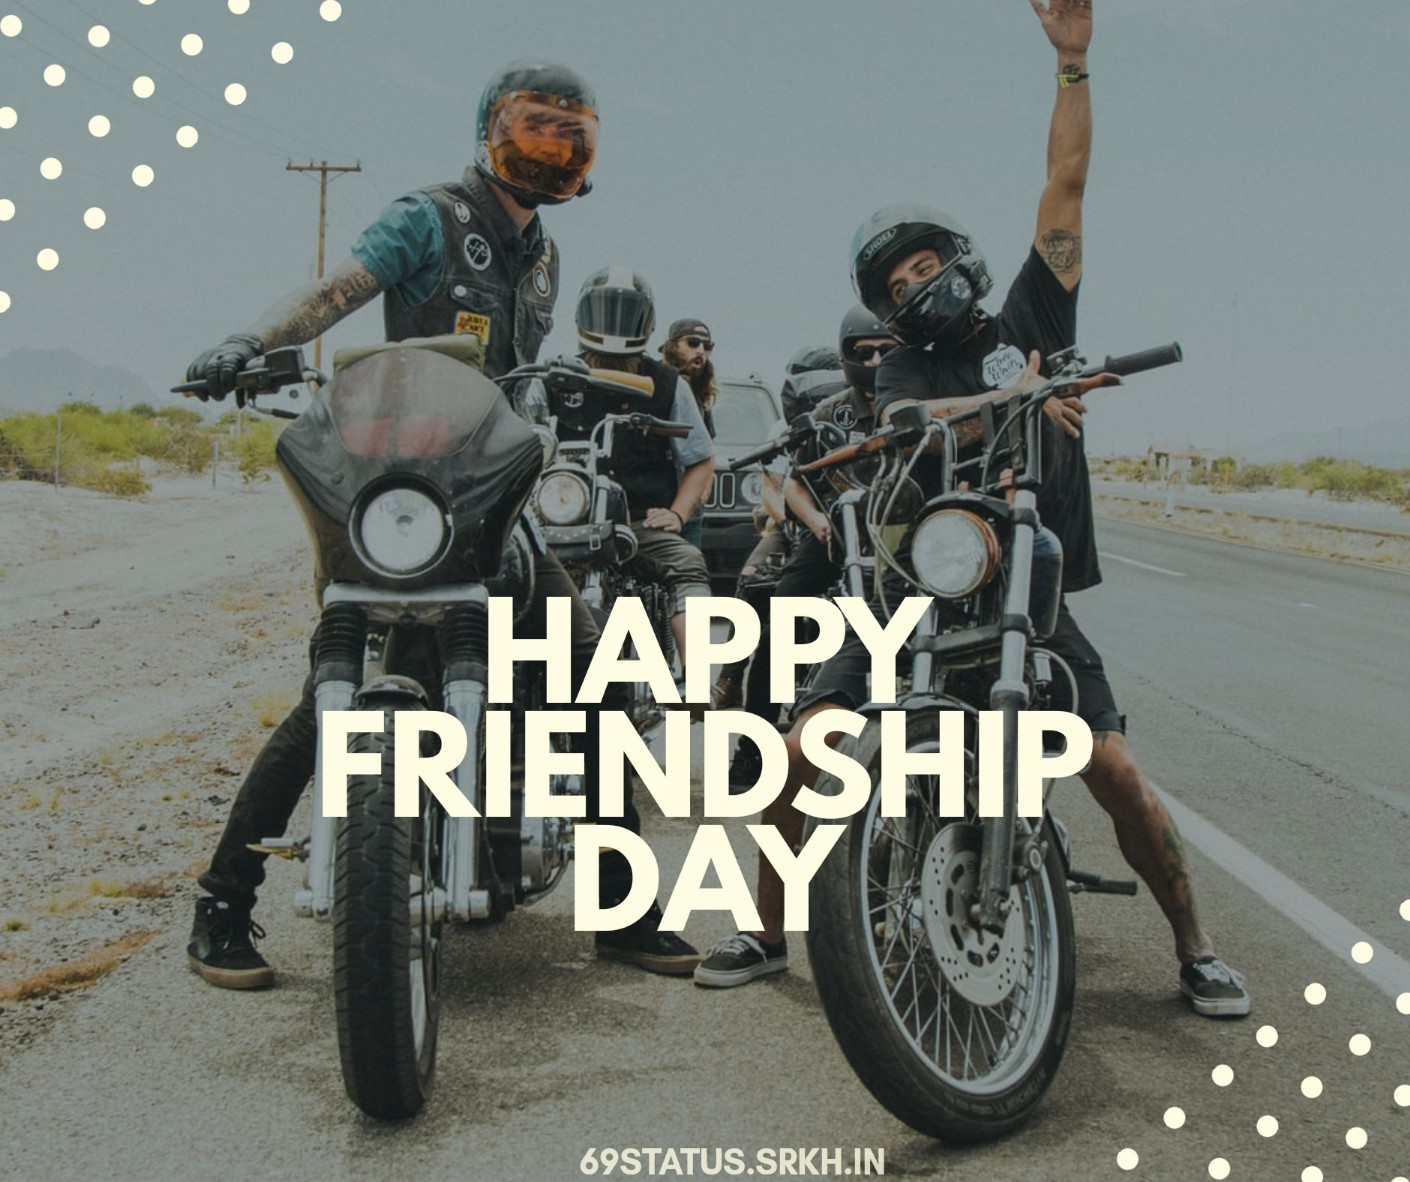 Happy Friendship Day Images for Facebook Biker Gang full HD free download.